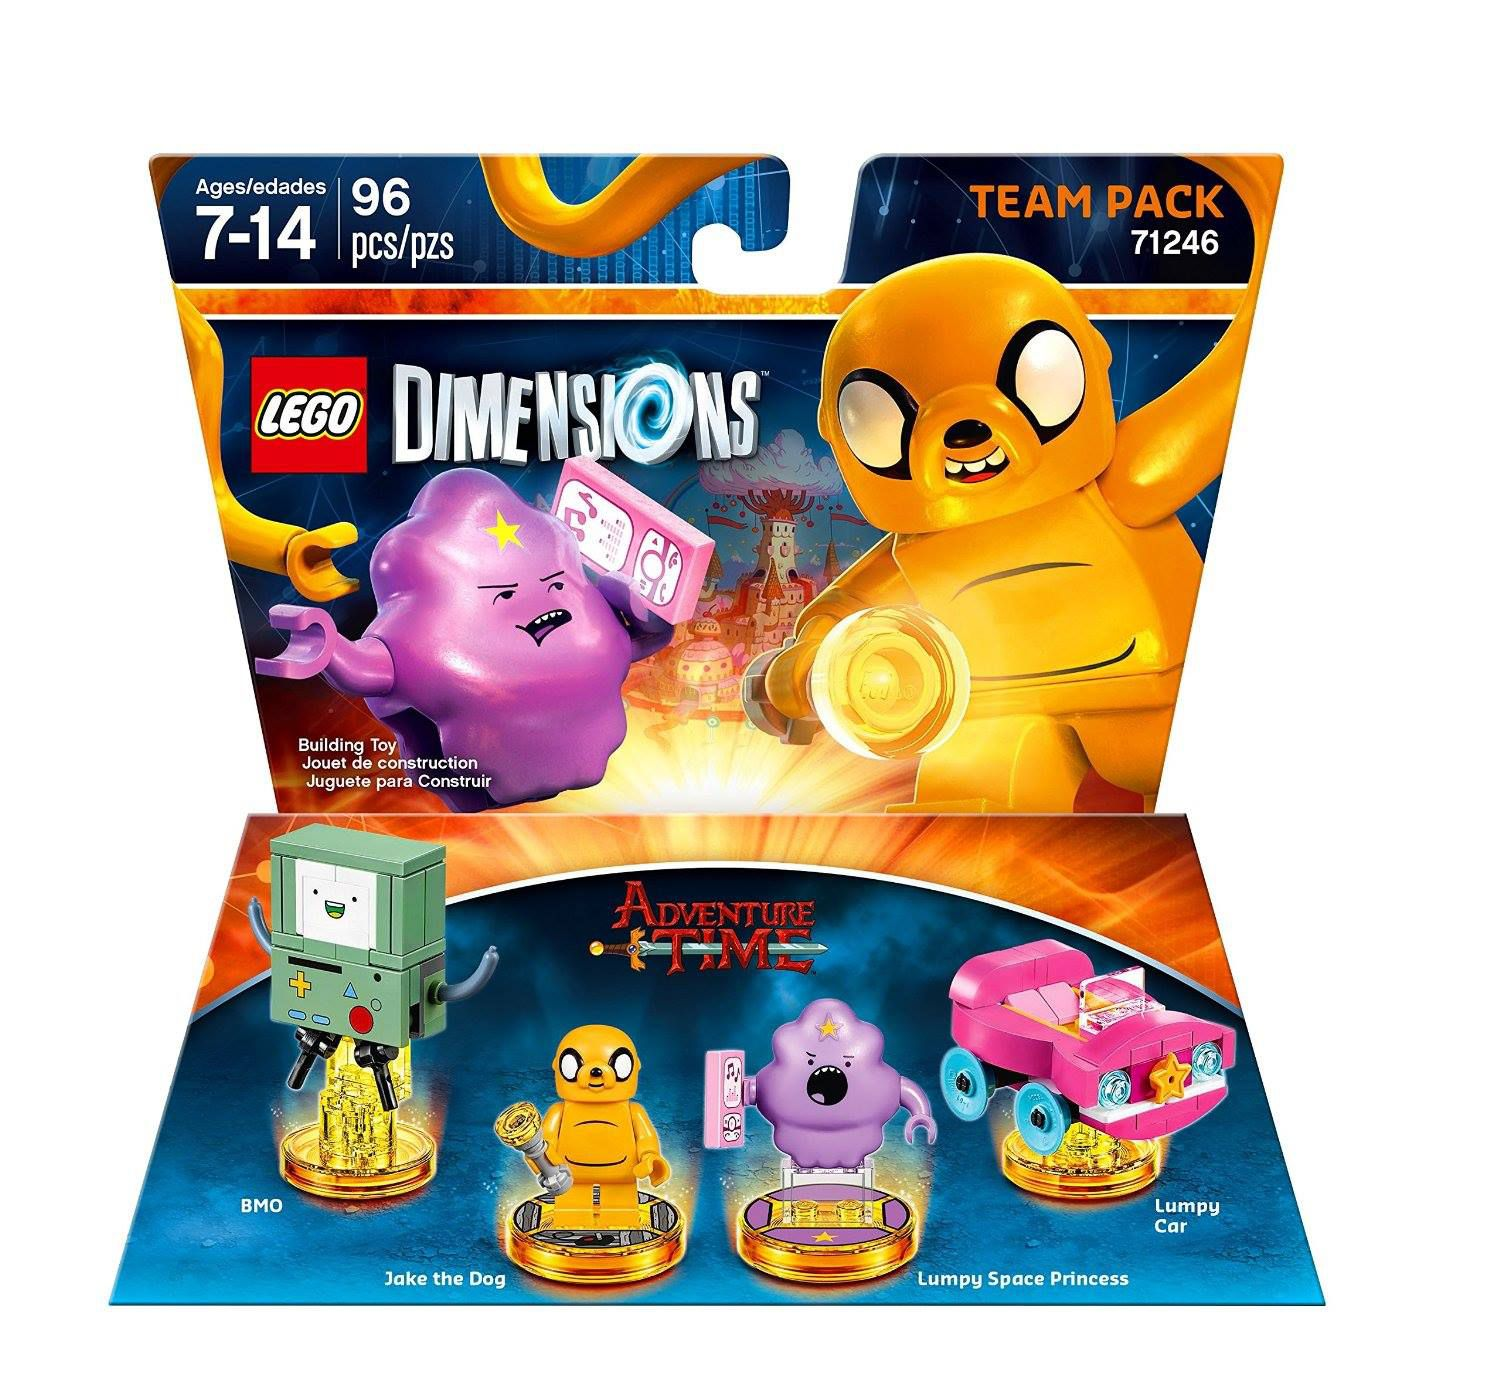 LEGO Dimensions 71246 Team Pack Adventure Time LEGO_DIMENSIONS_71246_Adventure-Time-03.jpg